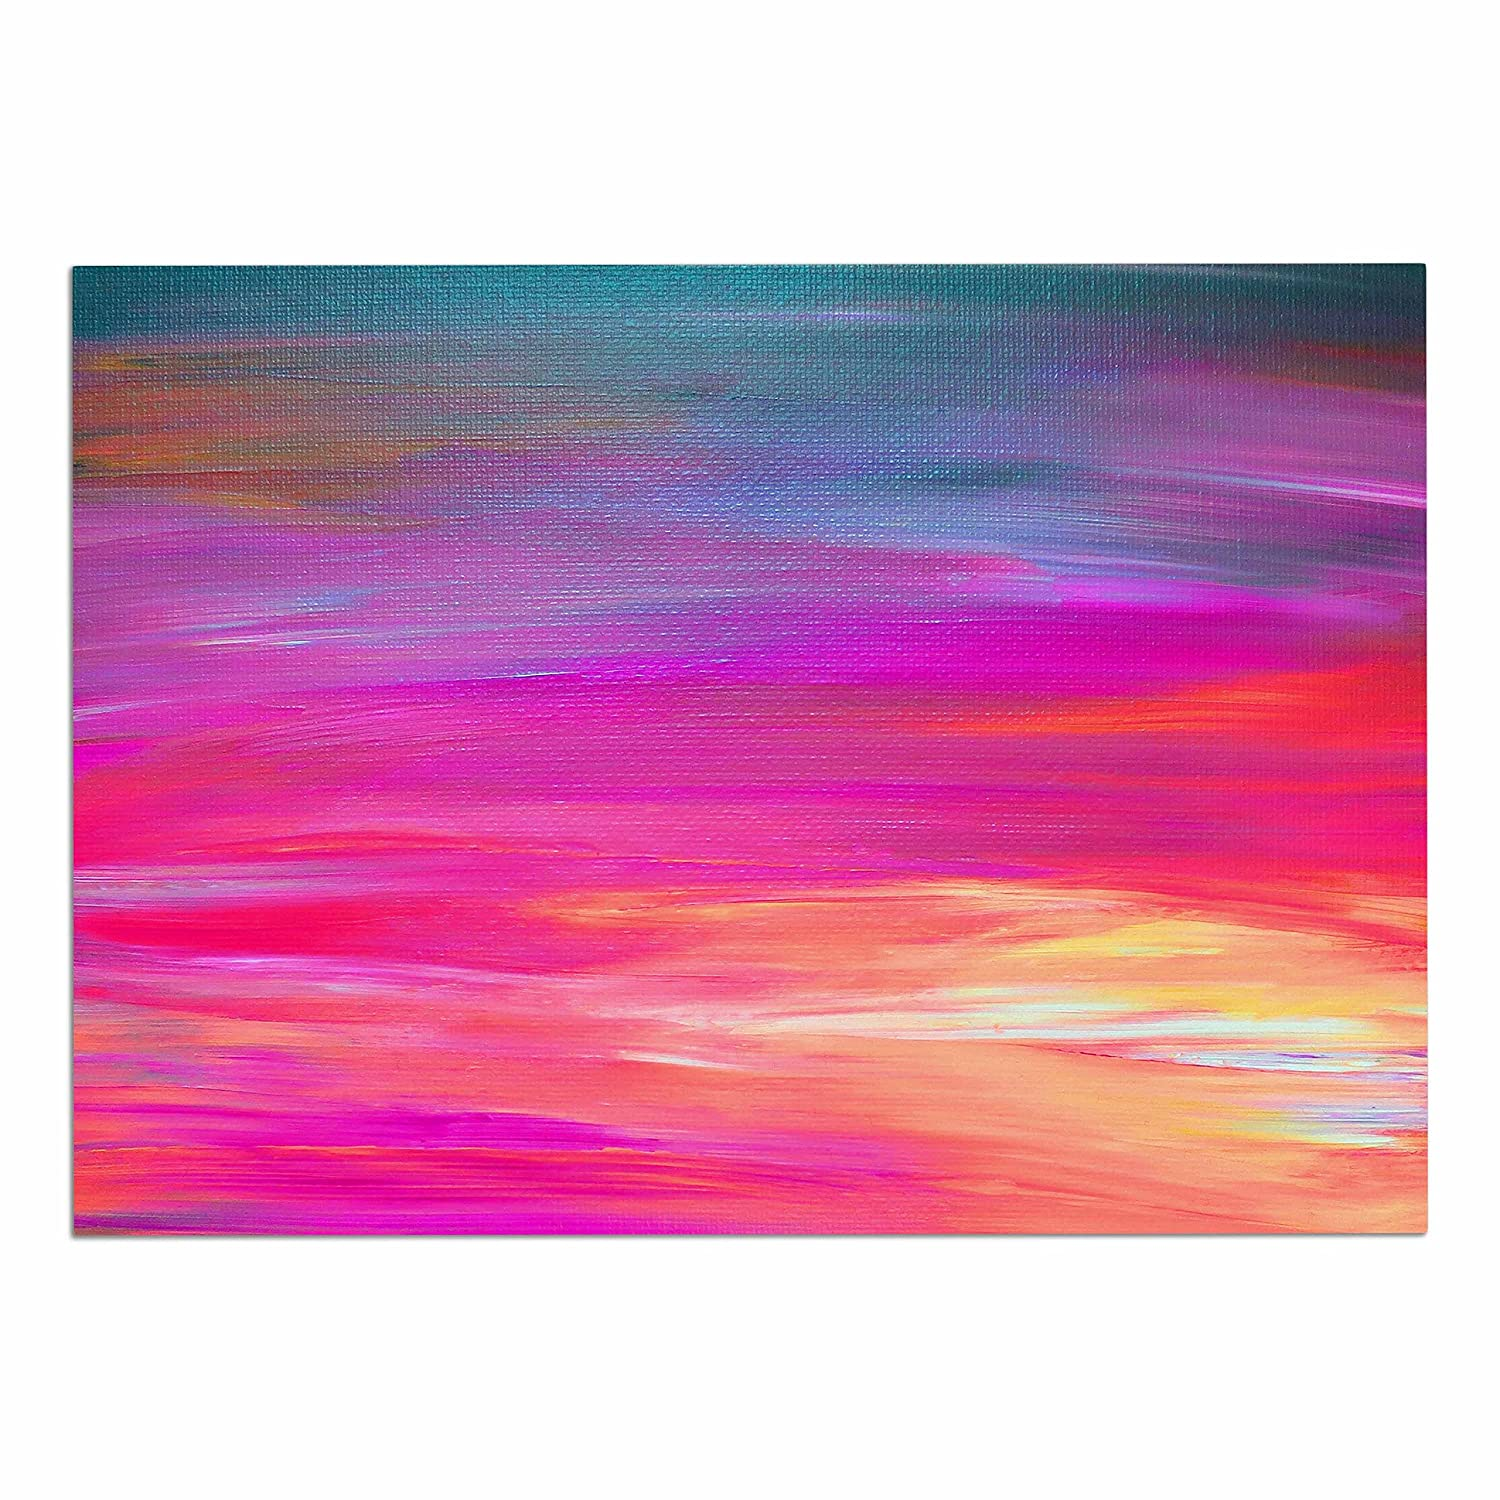 KESS InHouse JD1386ADM02 EBI Emporium Bright Horizons 2  Magenta Multicolor Painting Dog Place Mat, 24  x 15